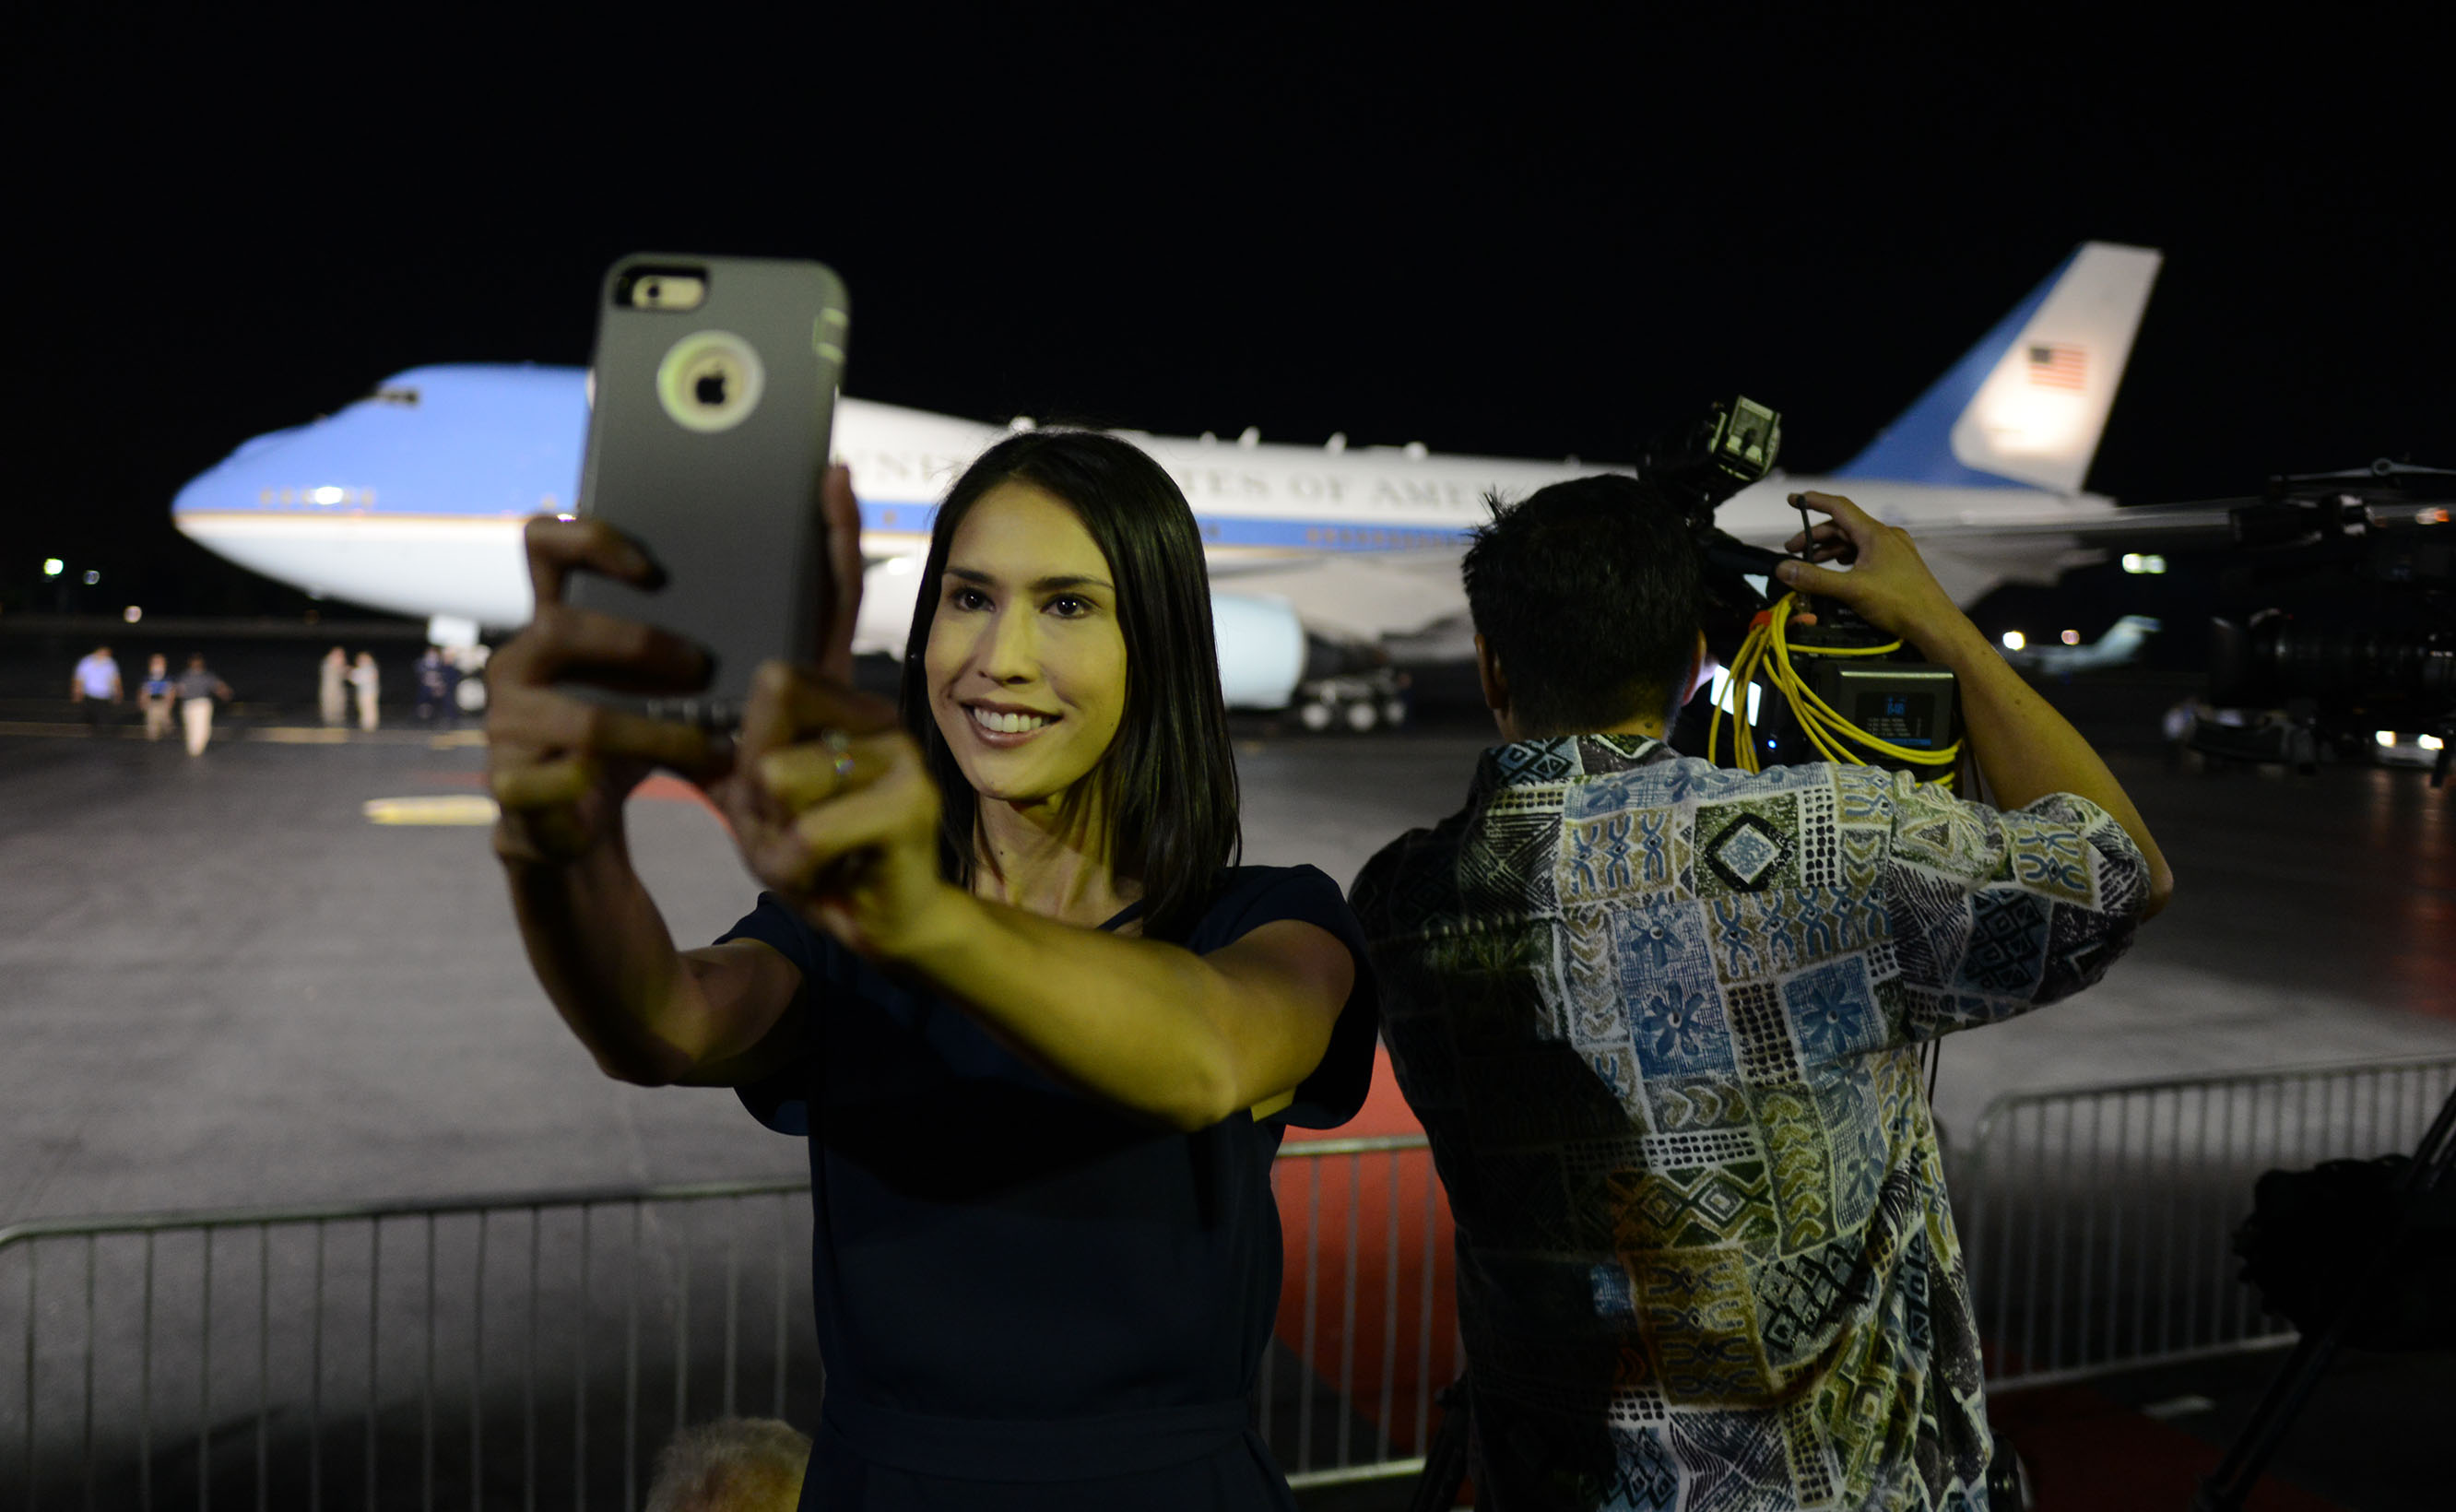 <p>Members of the local media on hand for presidentialarrivals and/or departures sometimes shoot selfies during their down time. KHON reporter Sarah Yoro captures herself with Air Force One in the background on Dec. 19, 2014.</p>